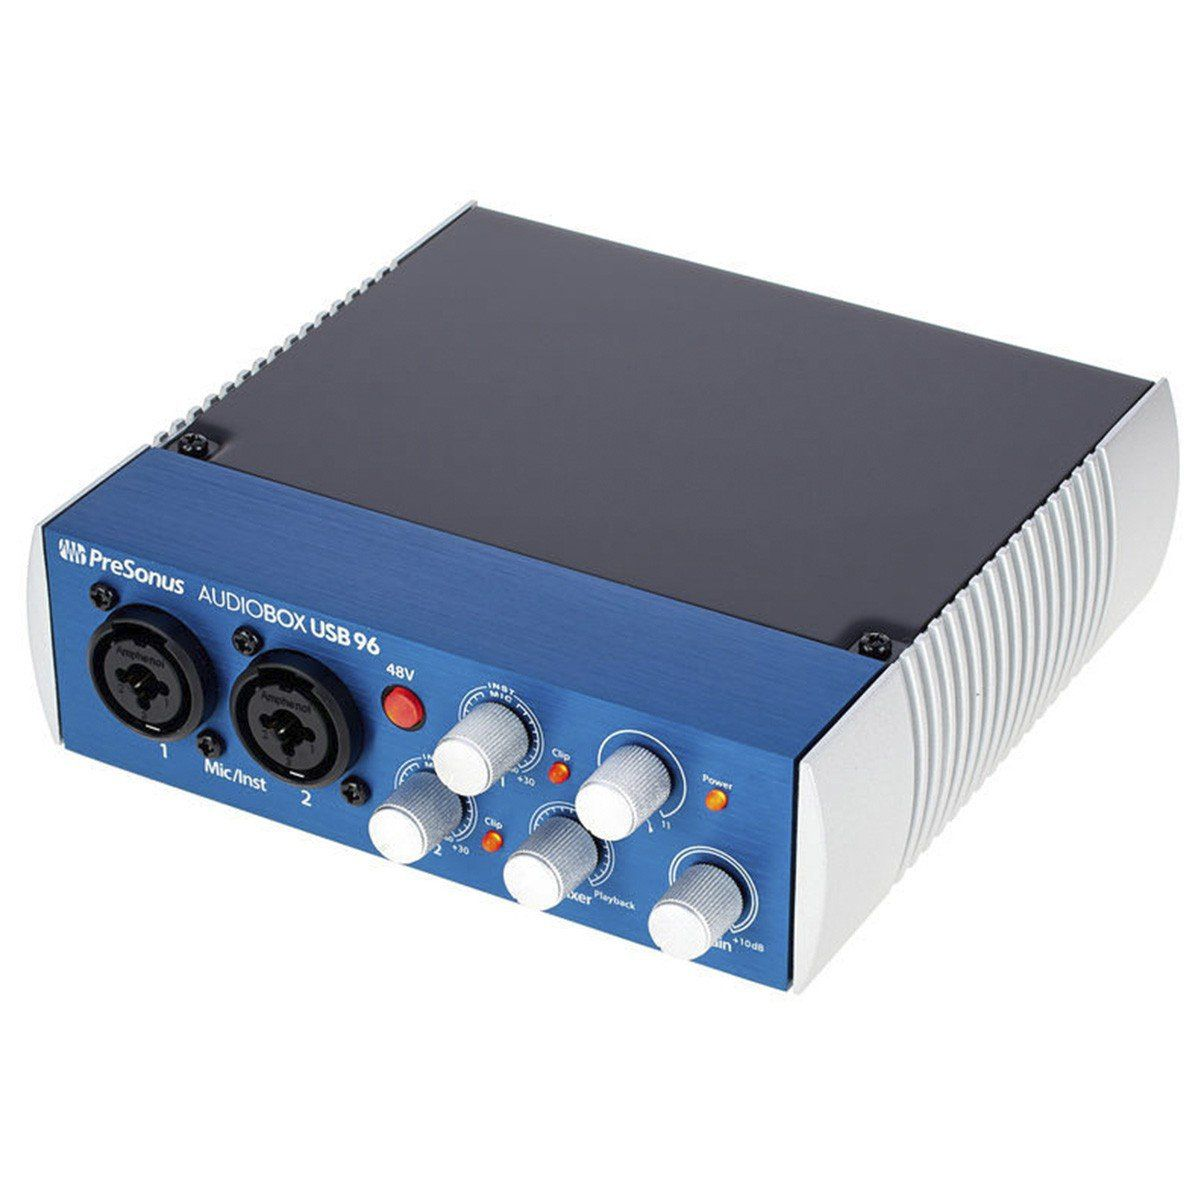 Presonus AudioBox 96 Interface de Áudio Audio Box 96Usb 2x2 Midi Pc Mac 24-Bit 96-Khz